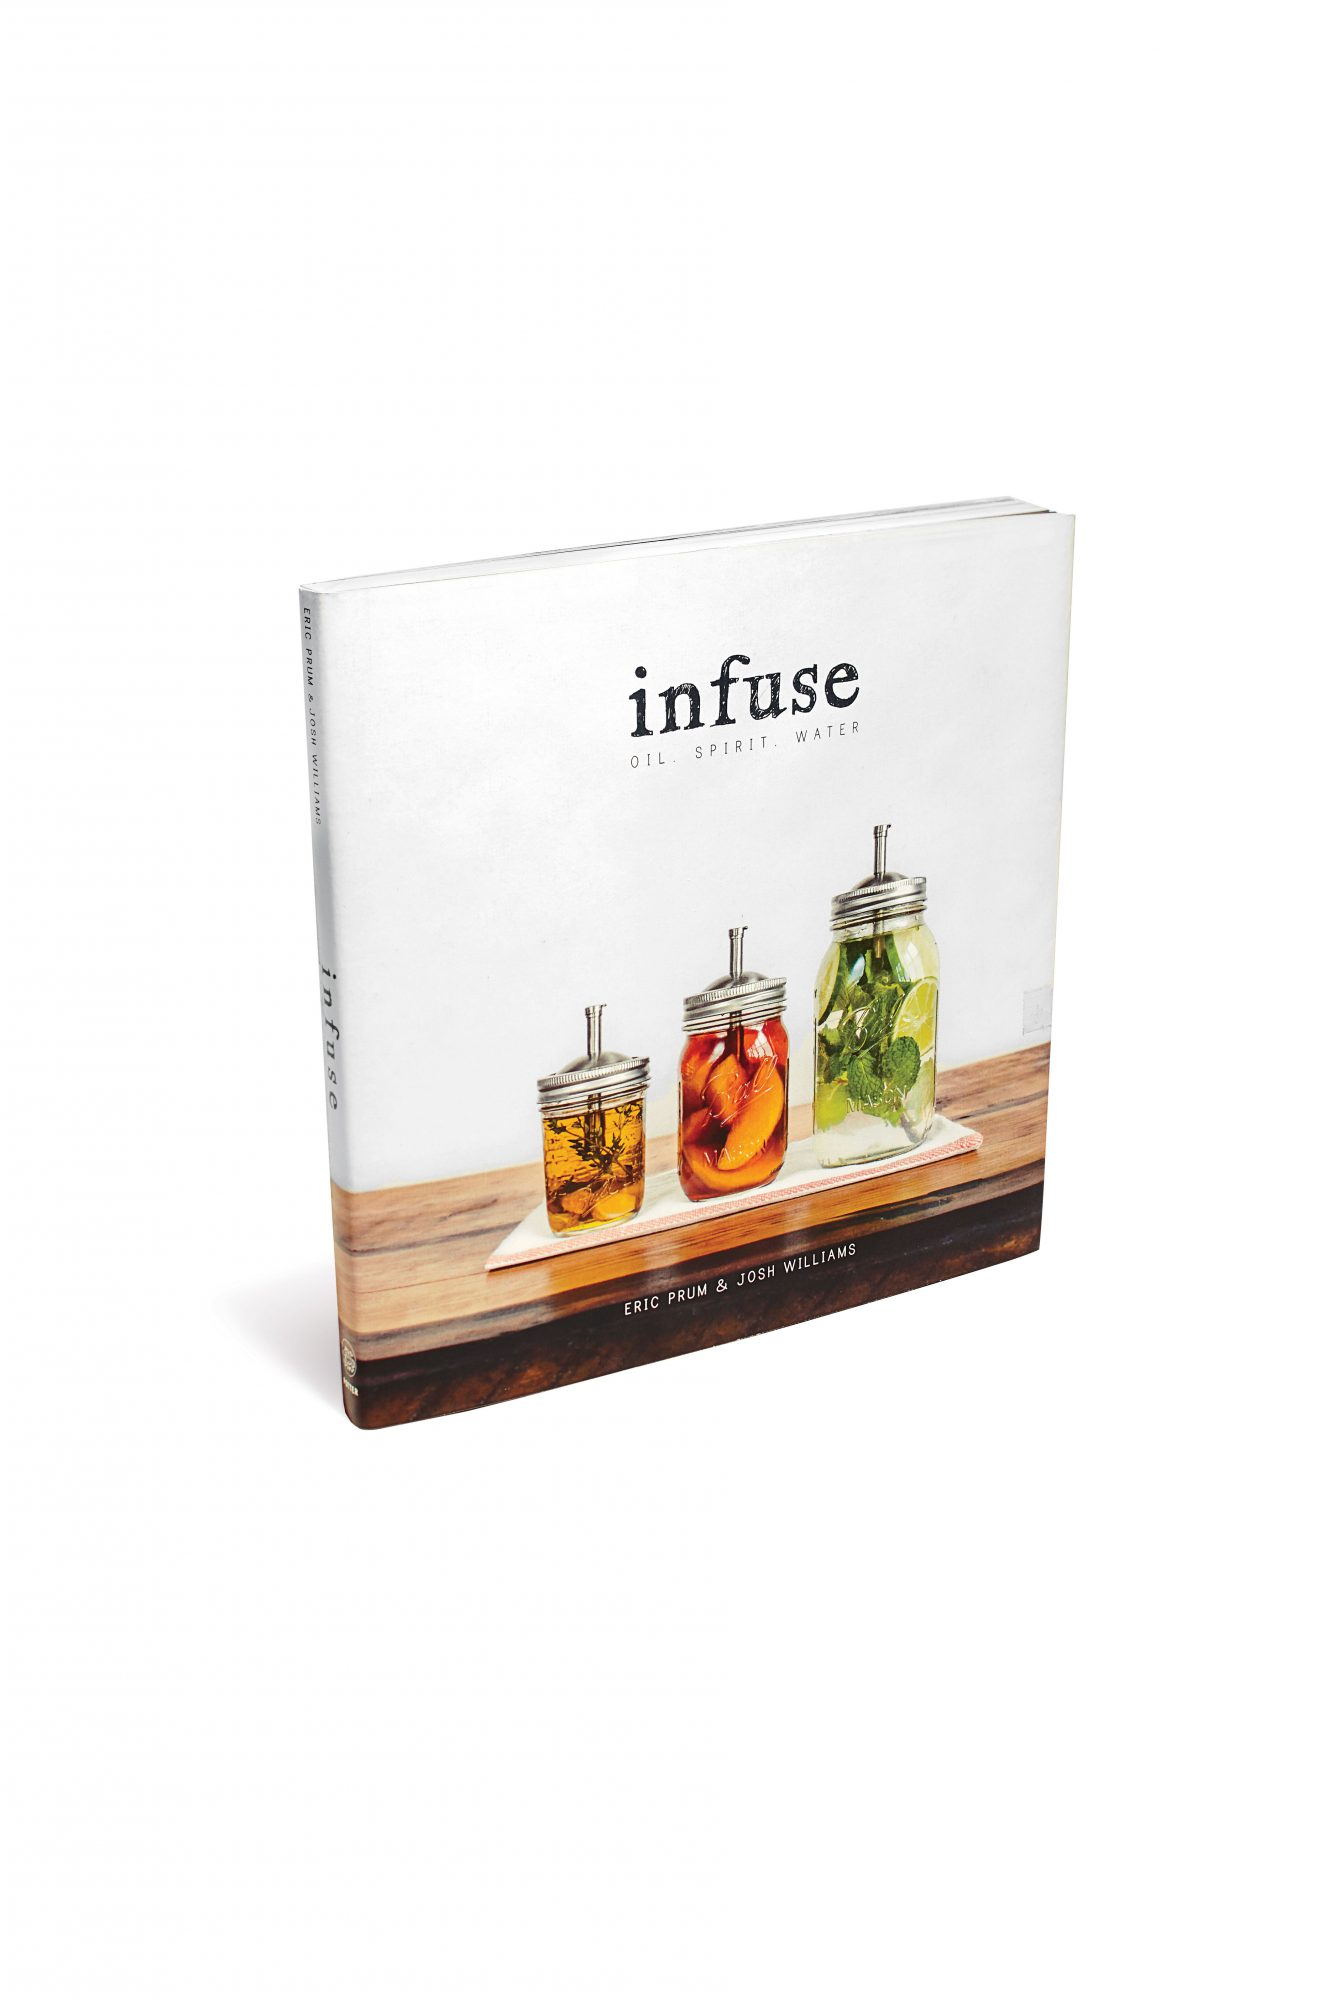 Infuse Cookbook Josh Williams and Eric Prum